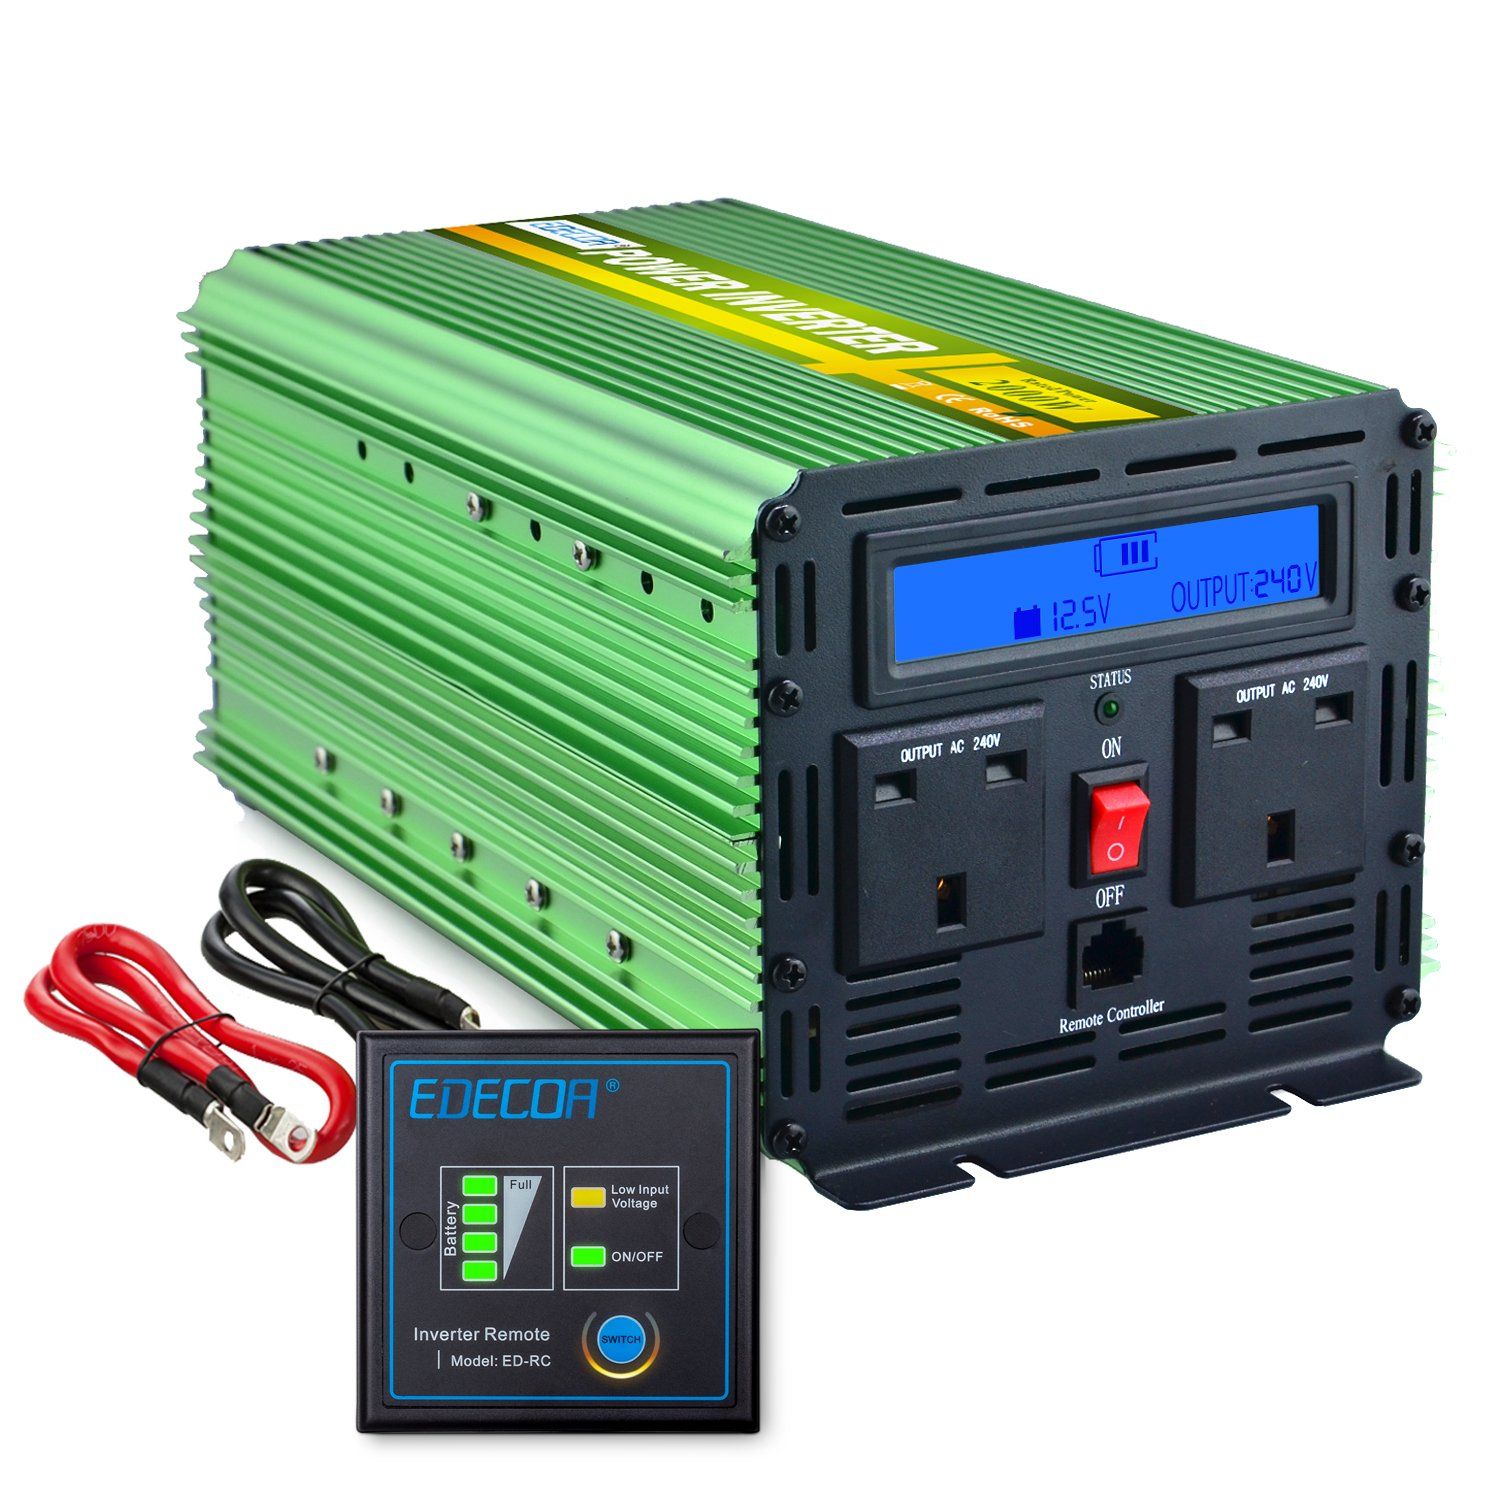 EDECOA Power Inverter 2000W DC 12V to 240V AC Car Vehicle with LCD Display and Remote - Green CT9M21G20L